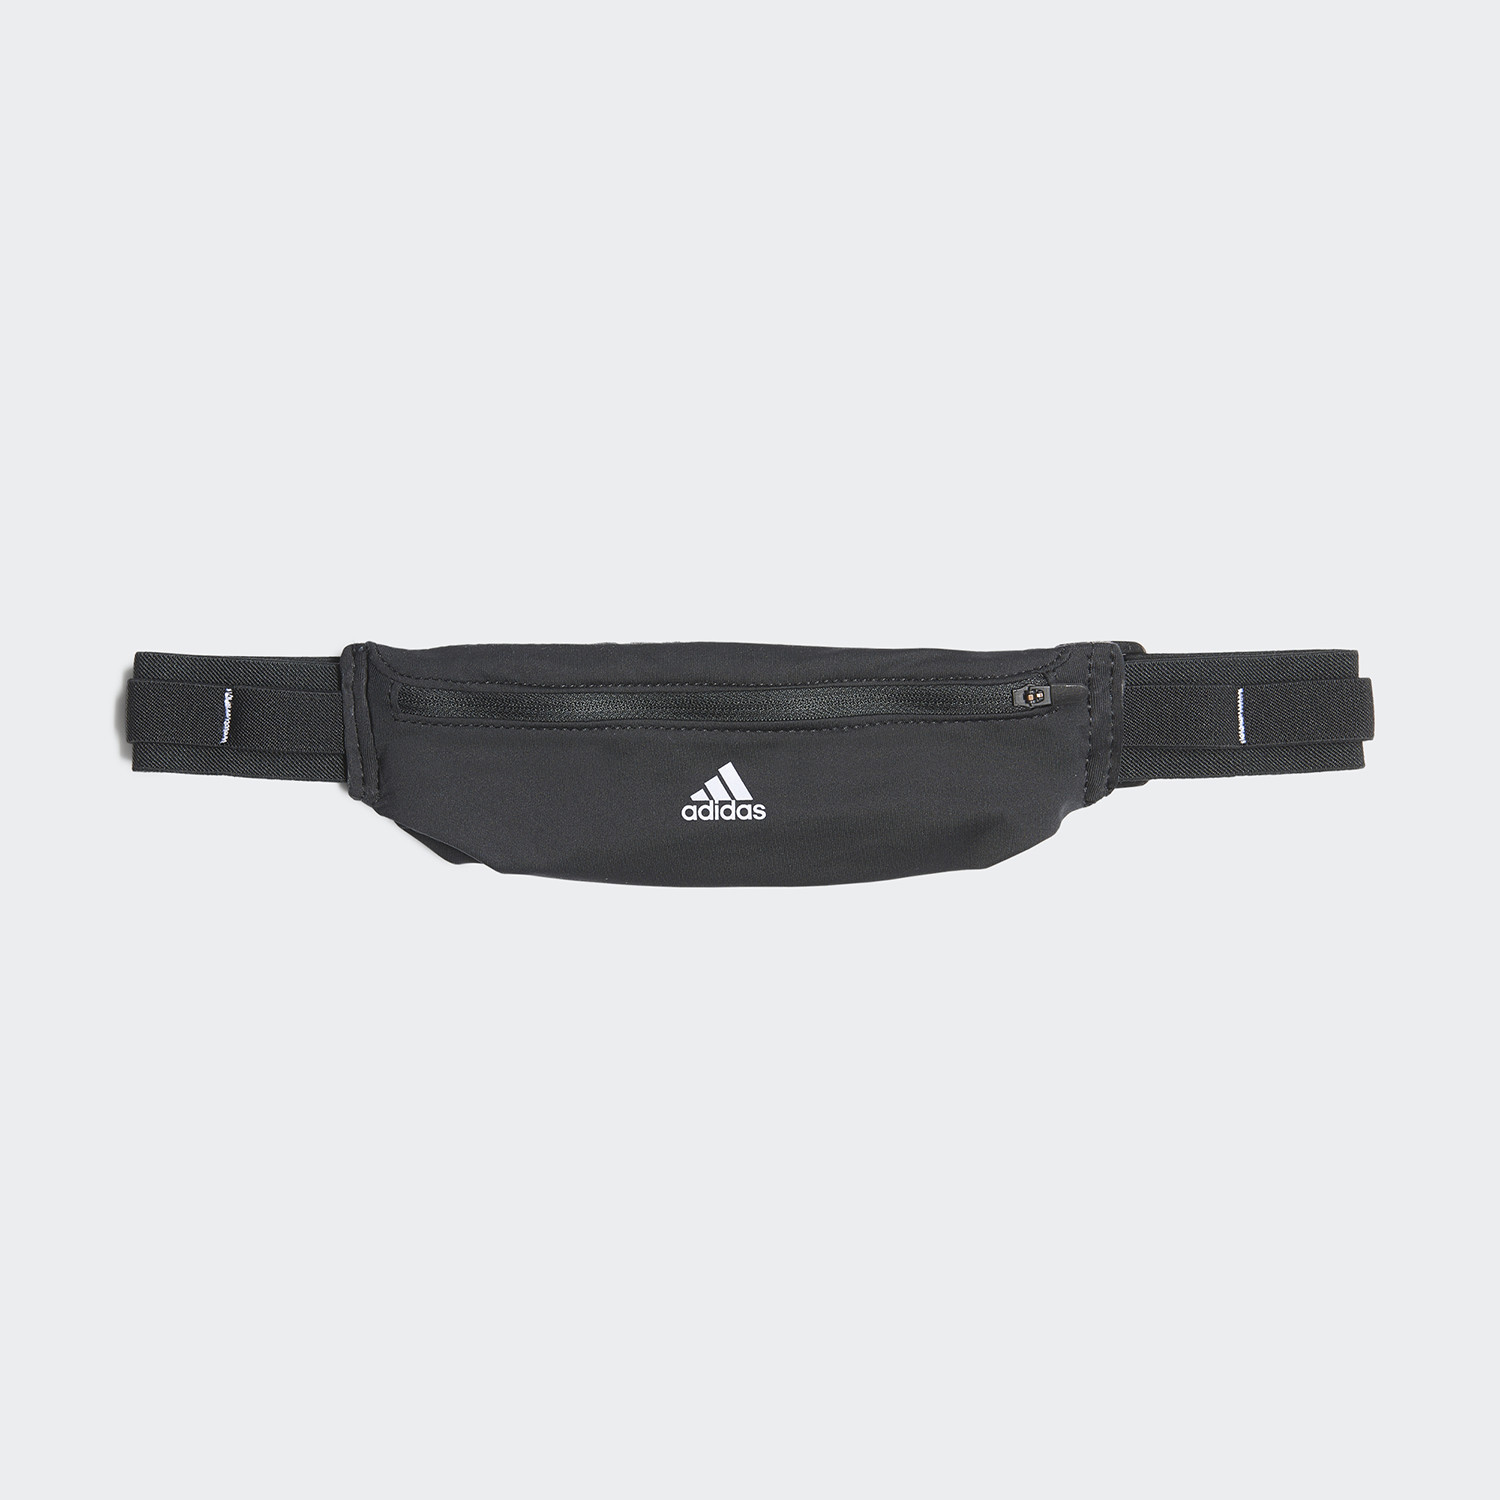 adidas Performance Running Belt (9000068399_1480)